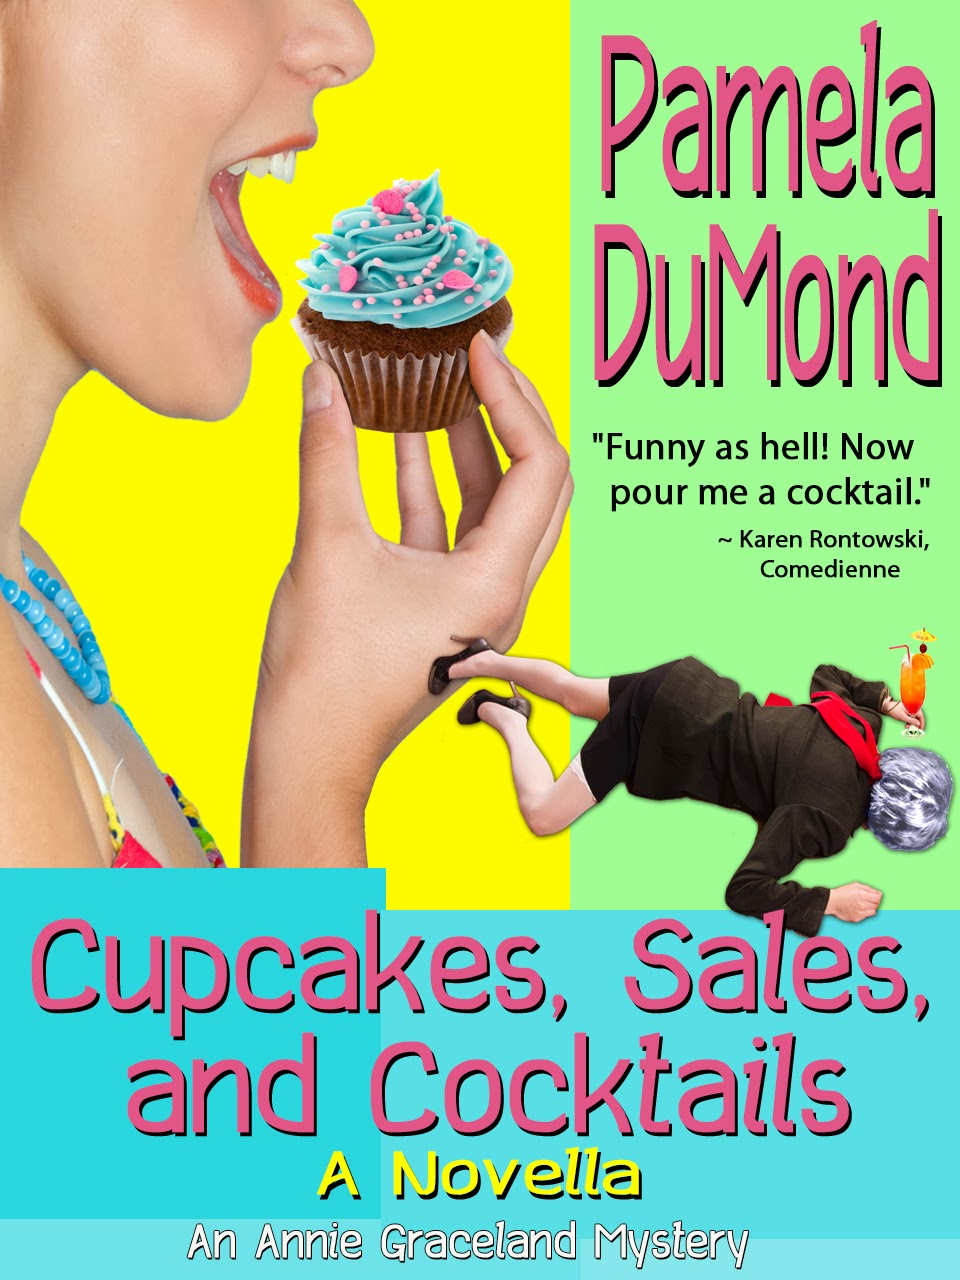 Cupcakes, Sales, and Cocktails - A Novella